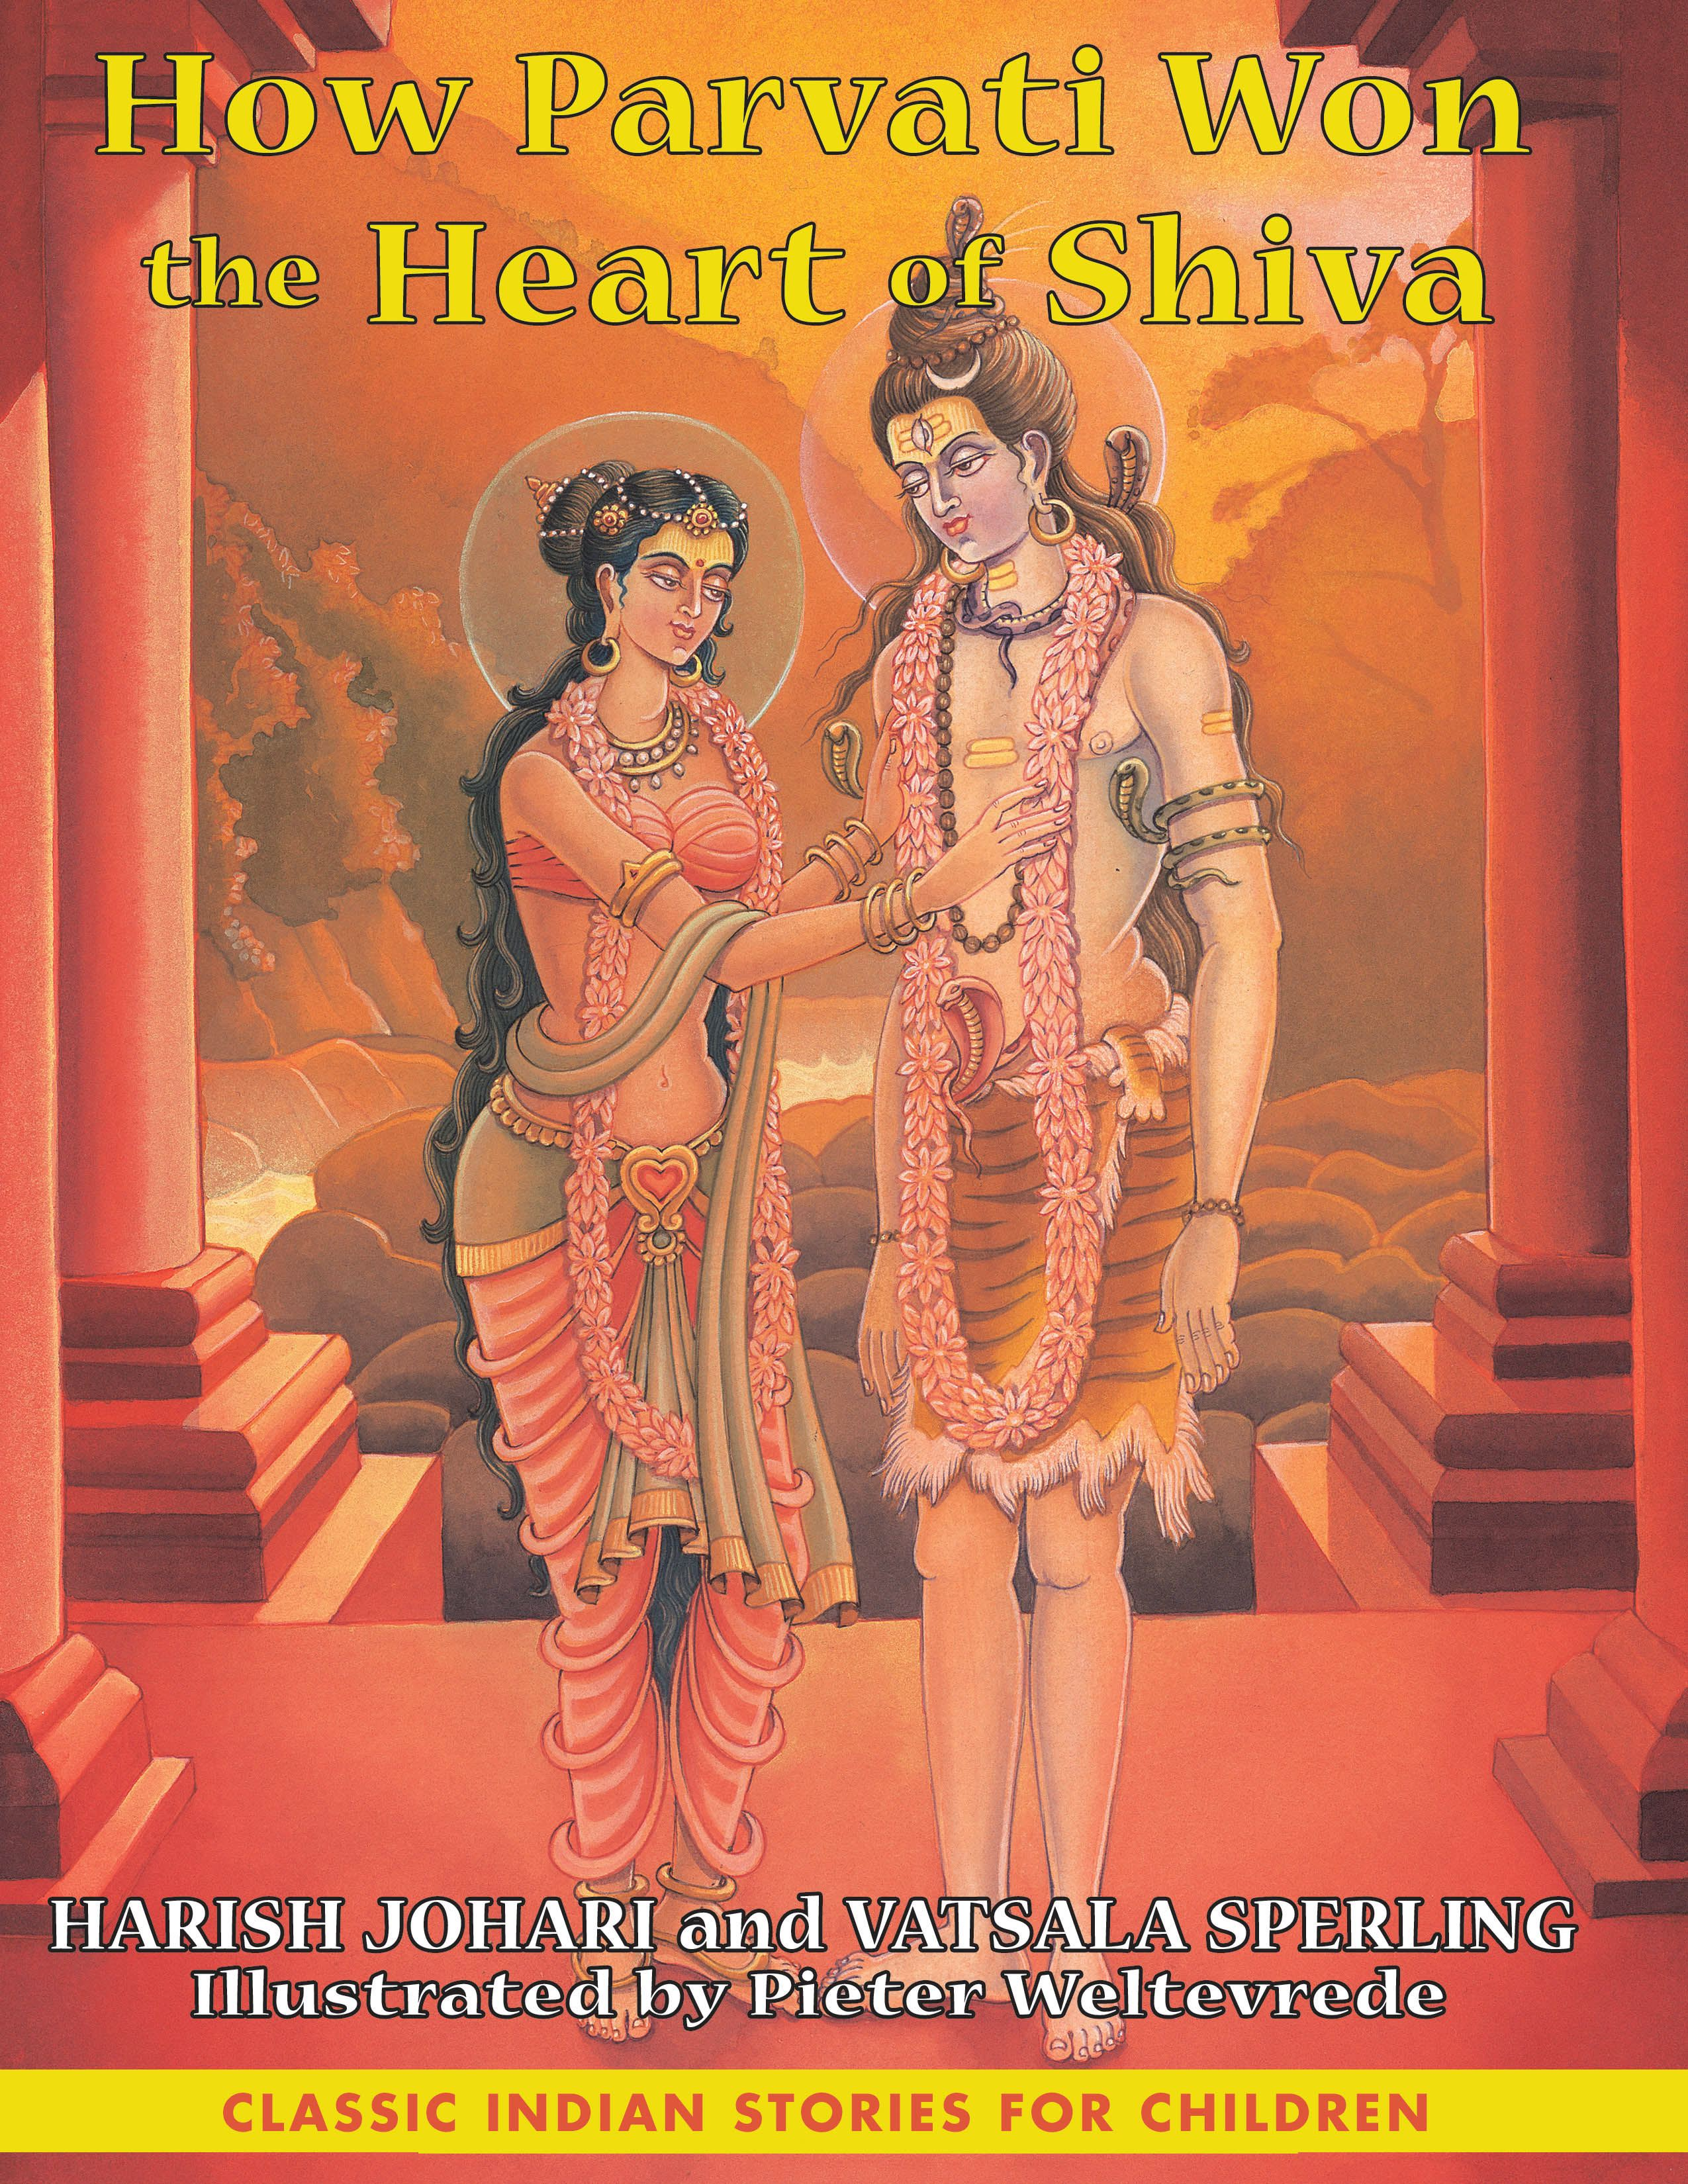 How-parvati-won-the-heart-of-shiva-9781591430421_hr